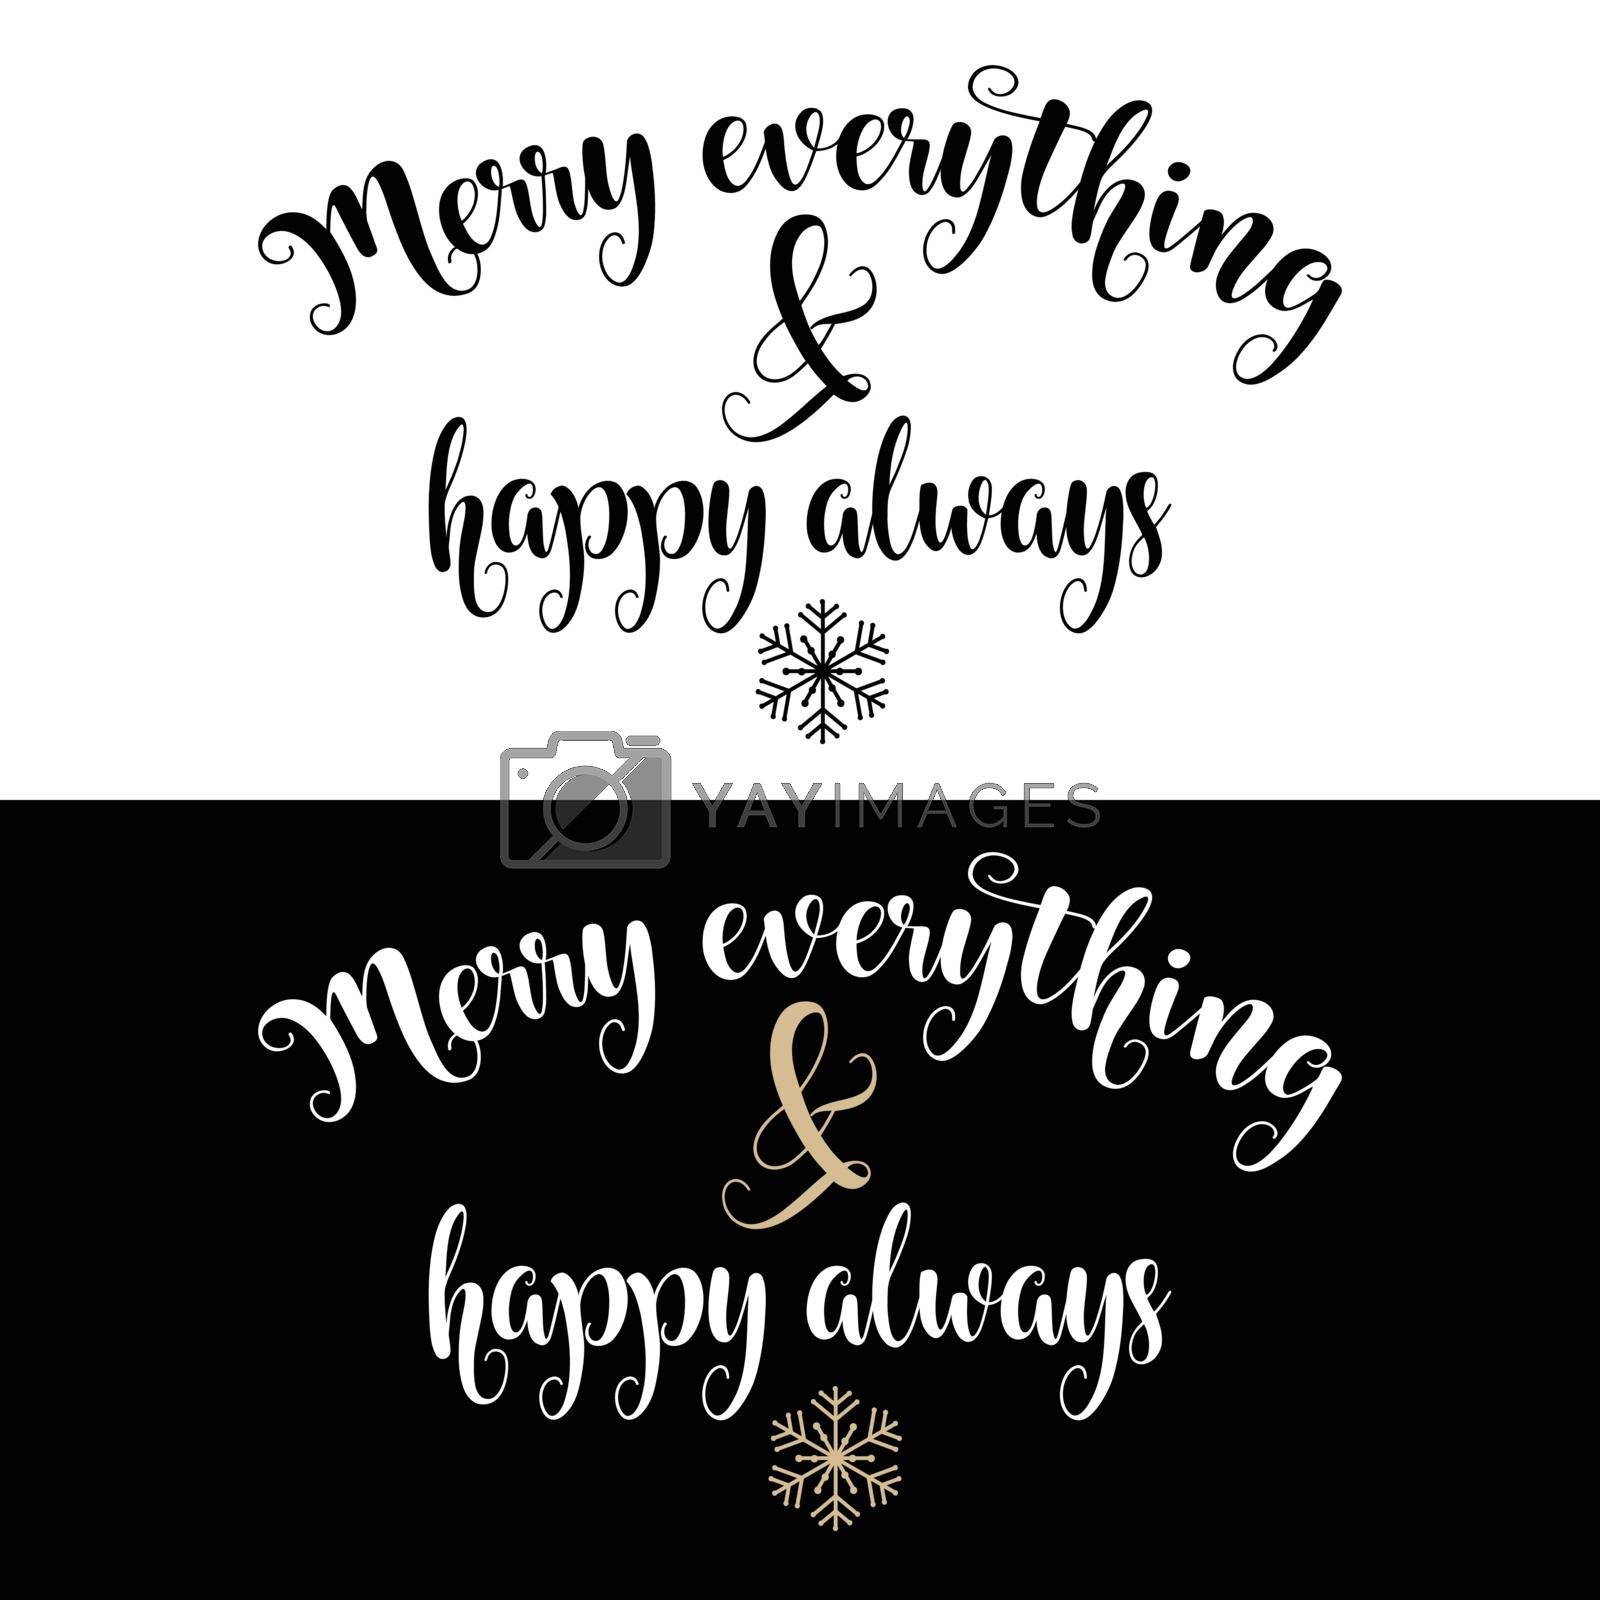 Christmas quote.Merry everything and happy always. Christmas poster, banner, Christmas card